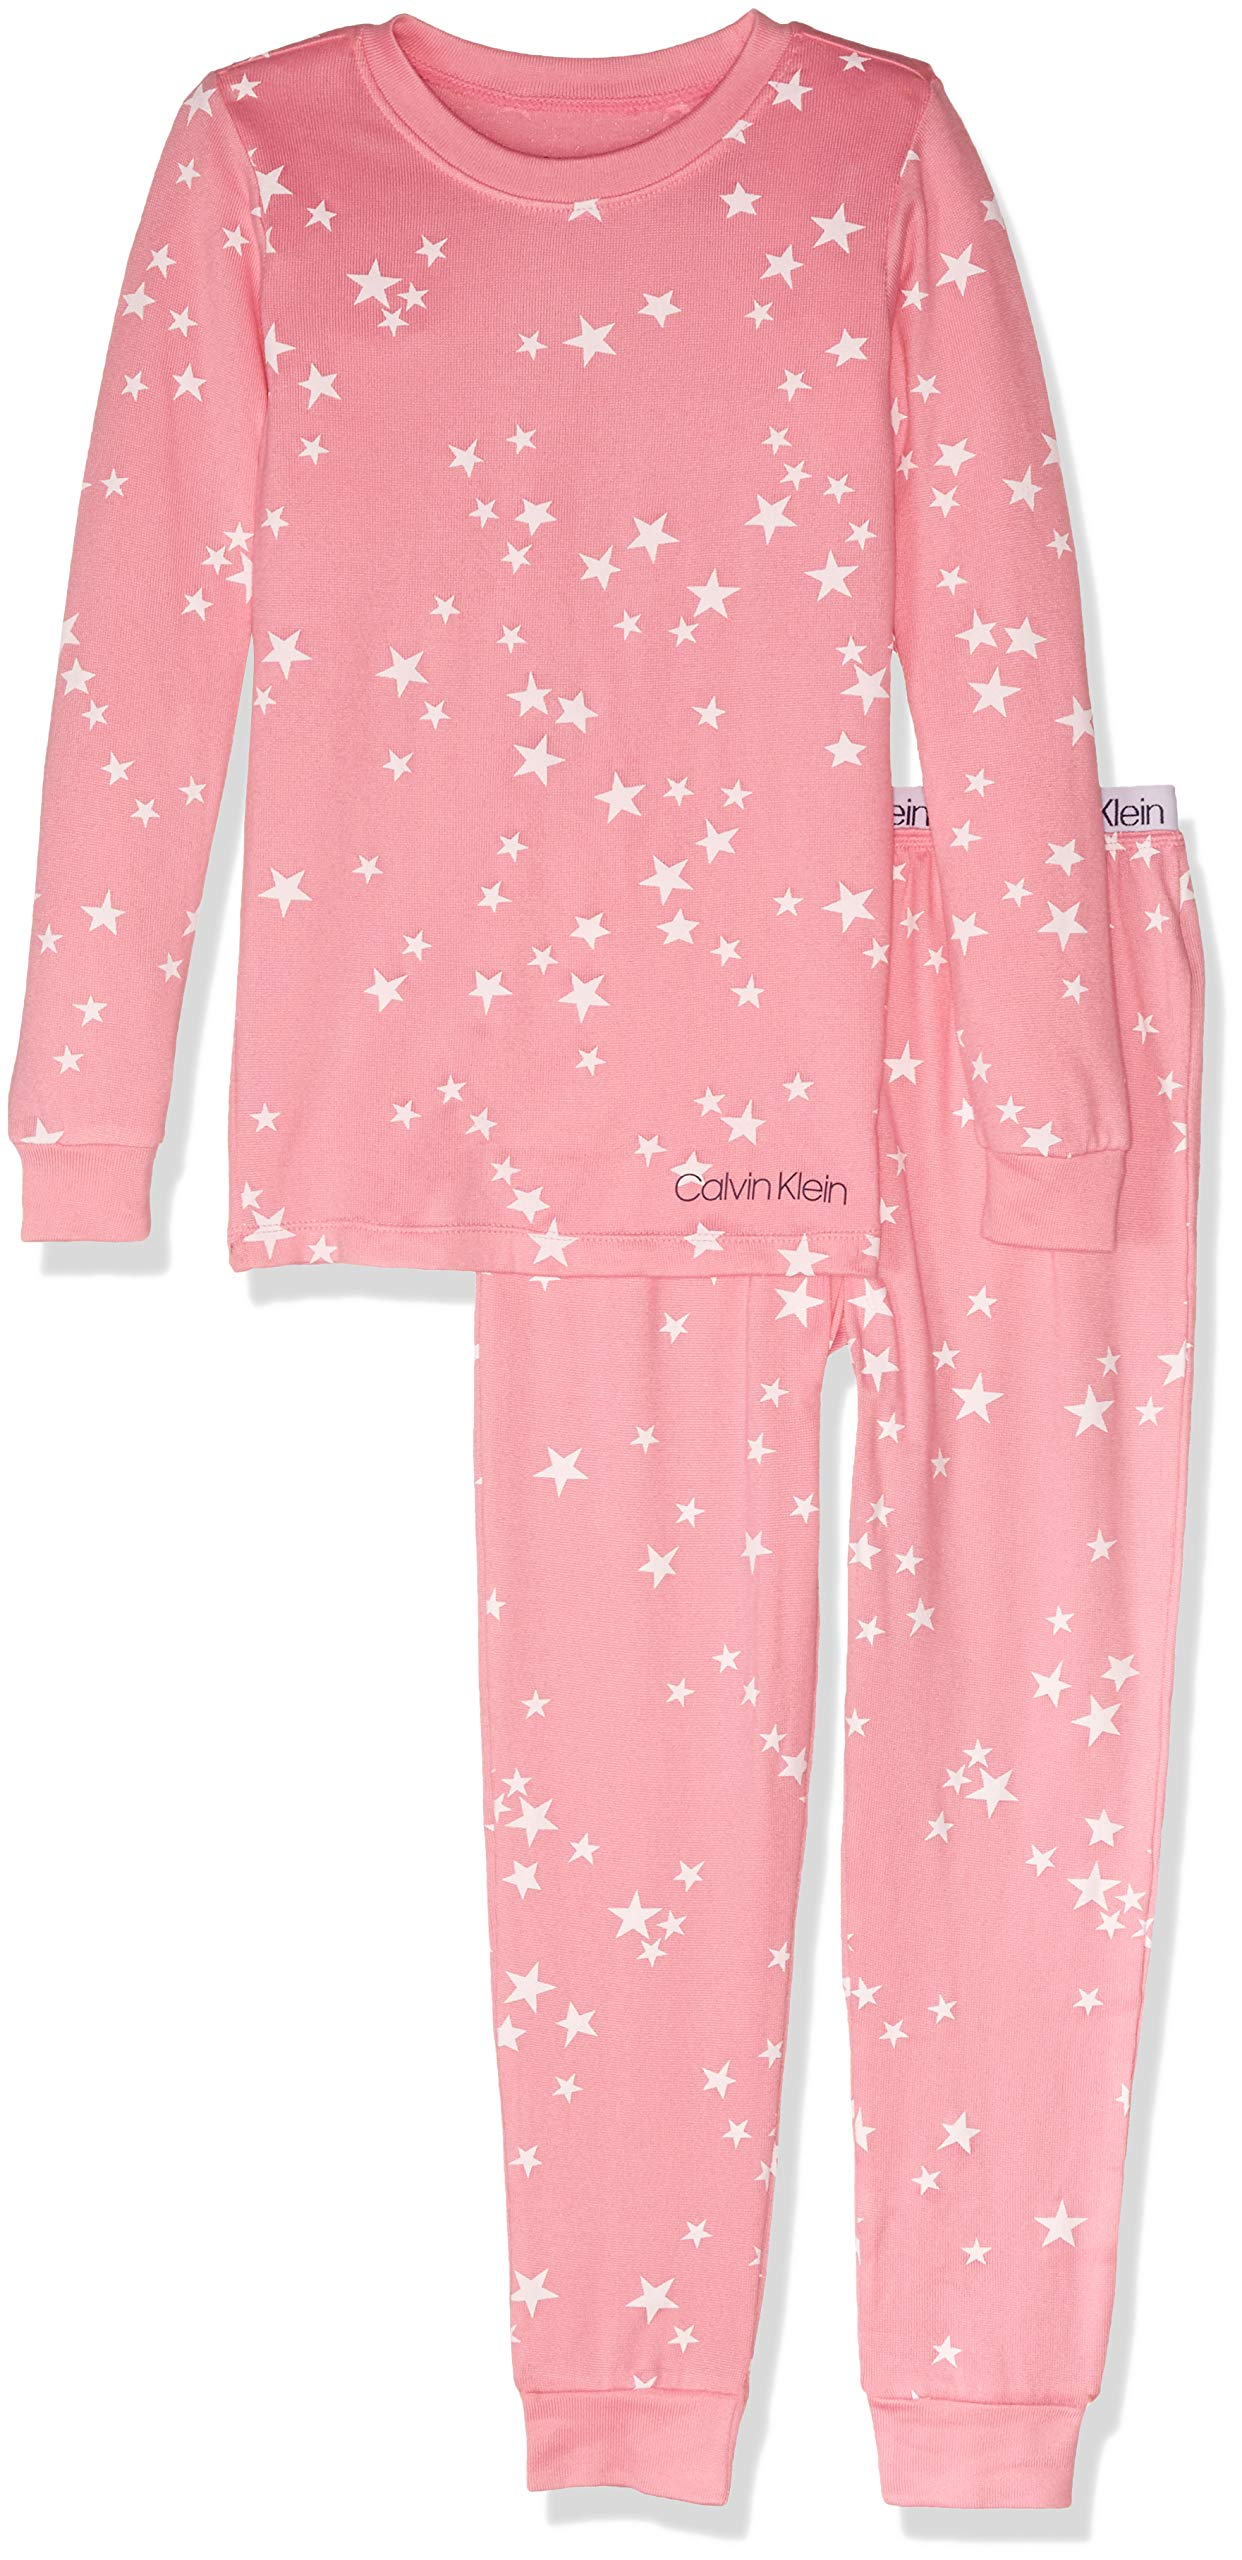 Calvin Klein Girls' Little 2 Piece Sleepwear Top and Bottom Pajama Set Pj